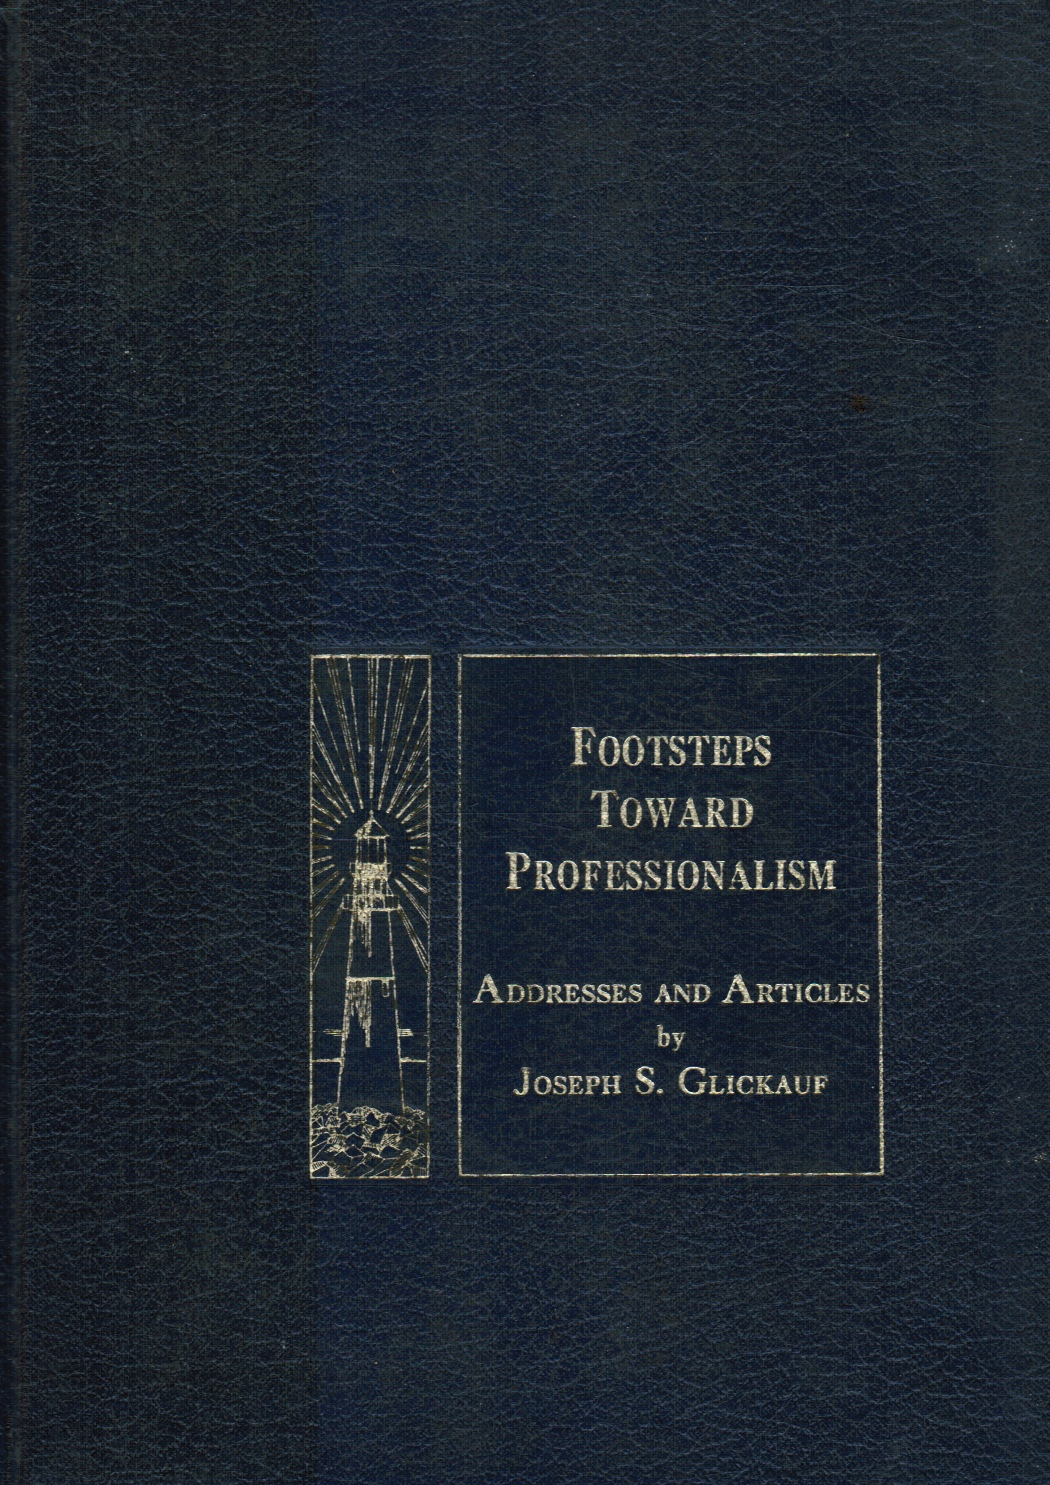 Image for Footsteps Toward Professionalism: the Development of an Administrative Services Practice over the Past Twenty-Five Years